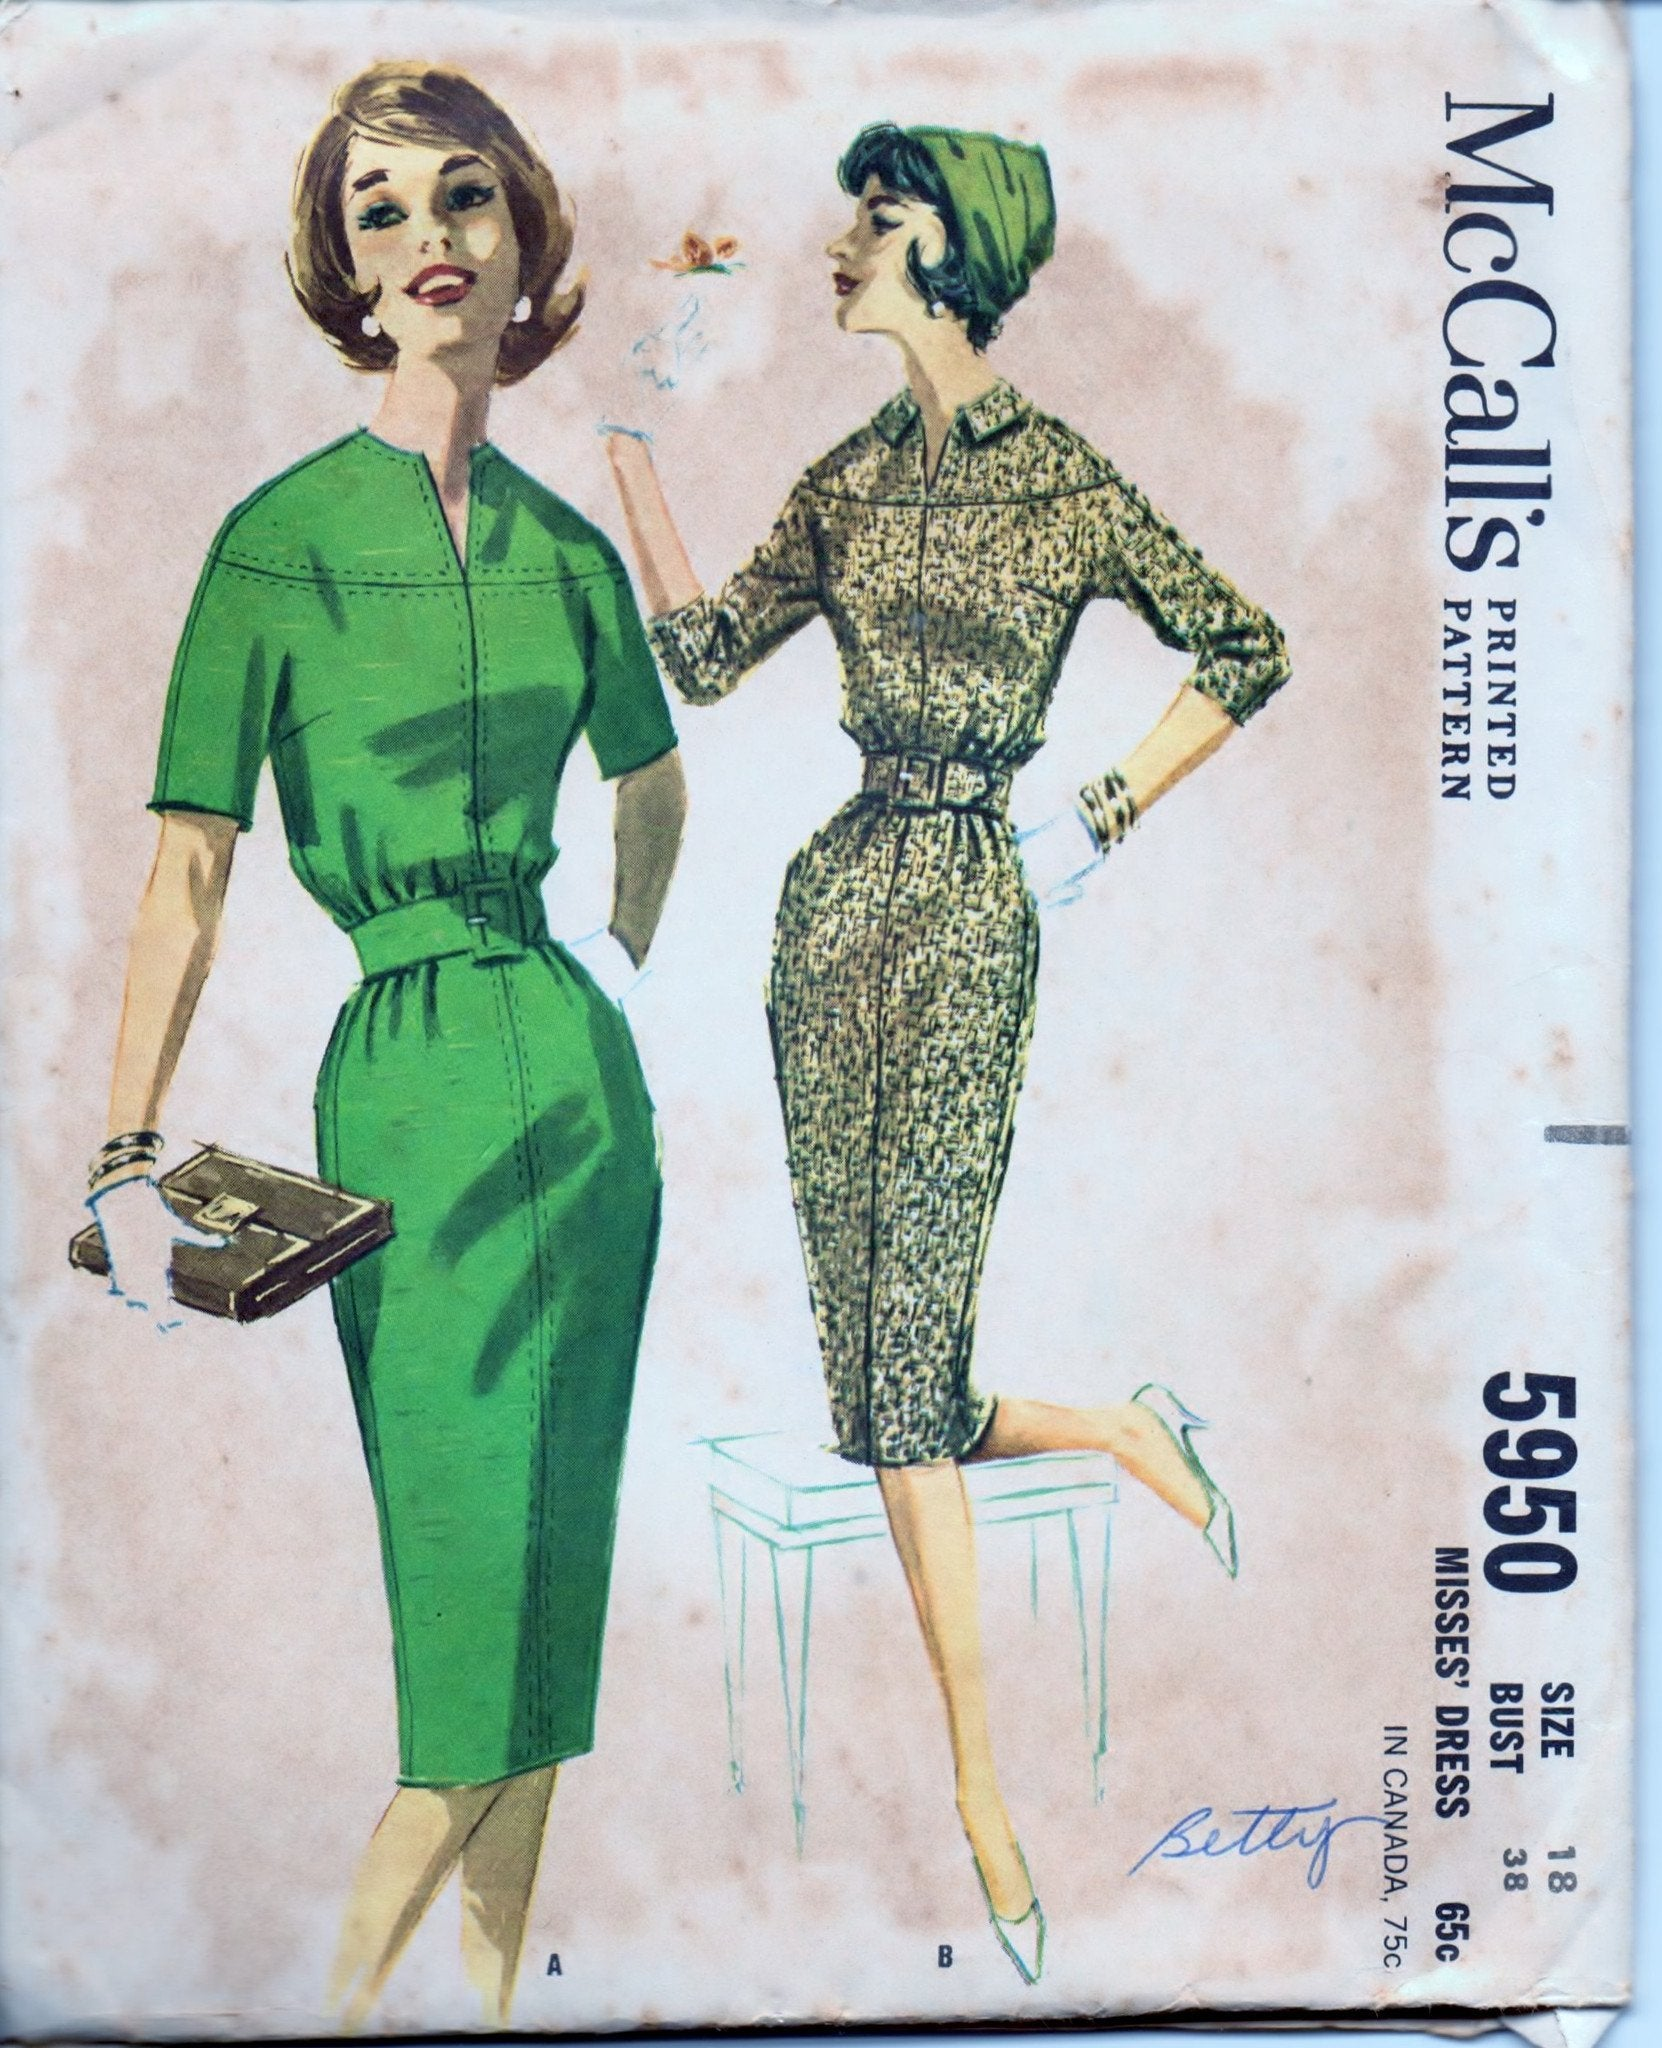 McCall's 5950 Ladies Dress with Bloused Bodice Vintage 1960's Sewing Pattern - VintageStitching - Vintage Sewing Patterns